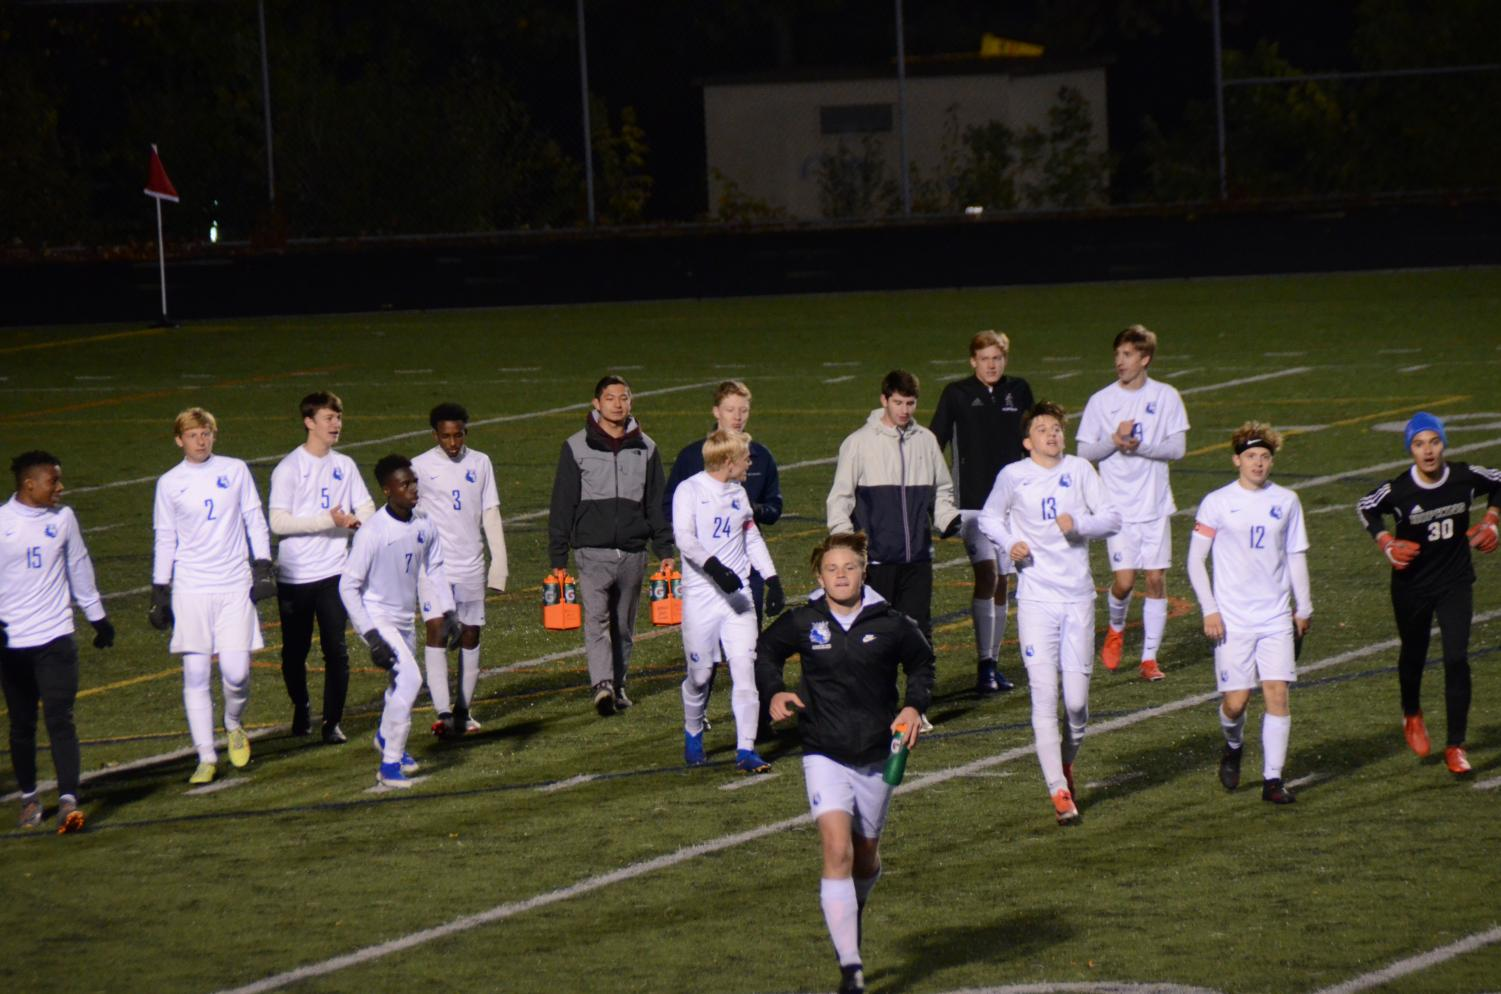 The Royals jog back to the bench after halftime. The Royals lost 1-0.